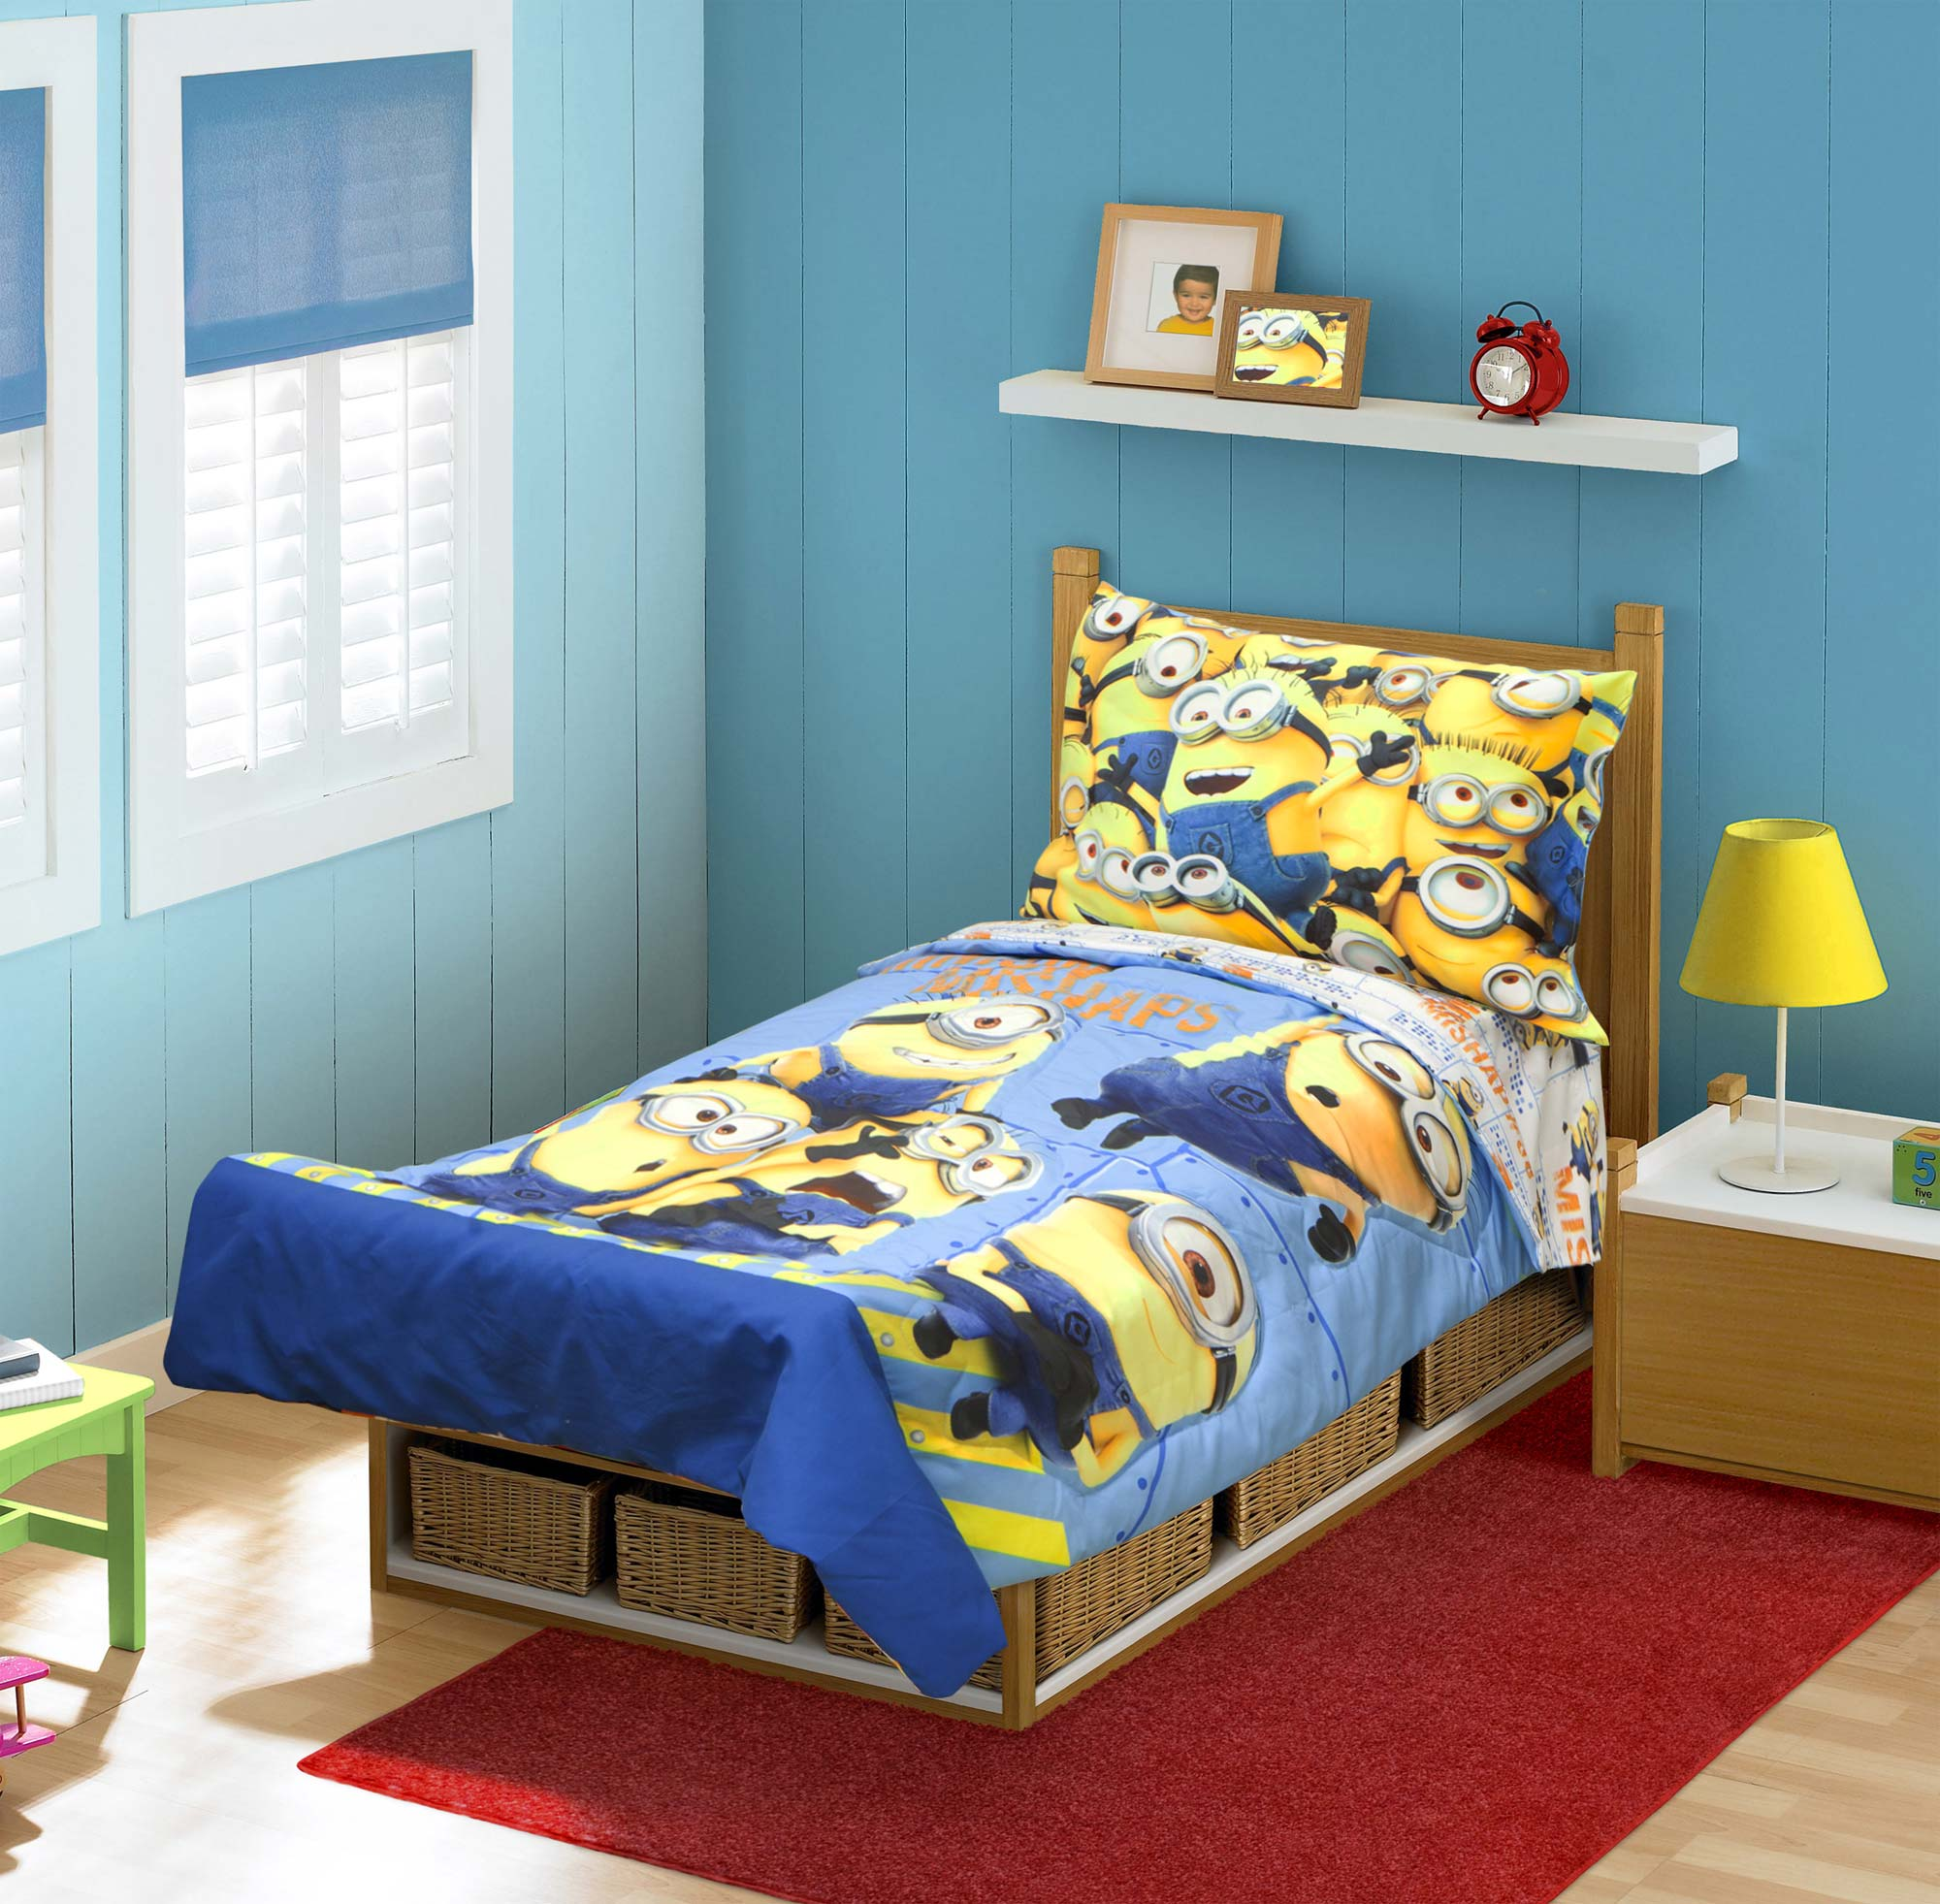 Despicable Me Toddler Bedding Set - 4pc Minions Mishap Comforter And Sheets